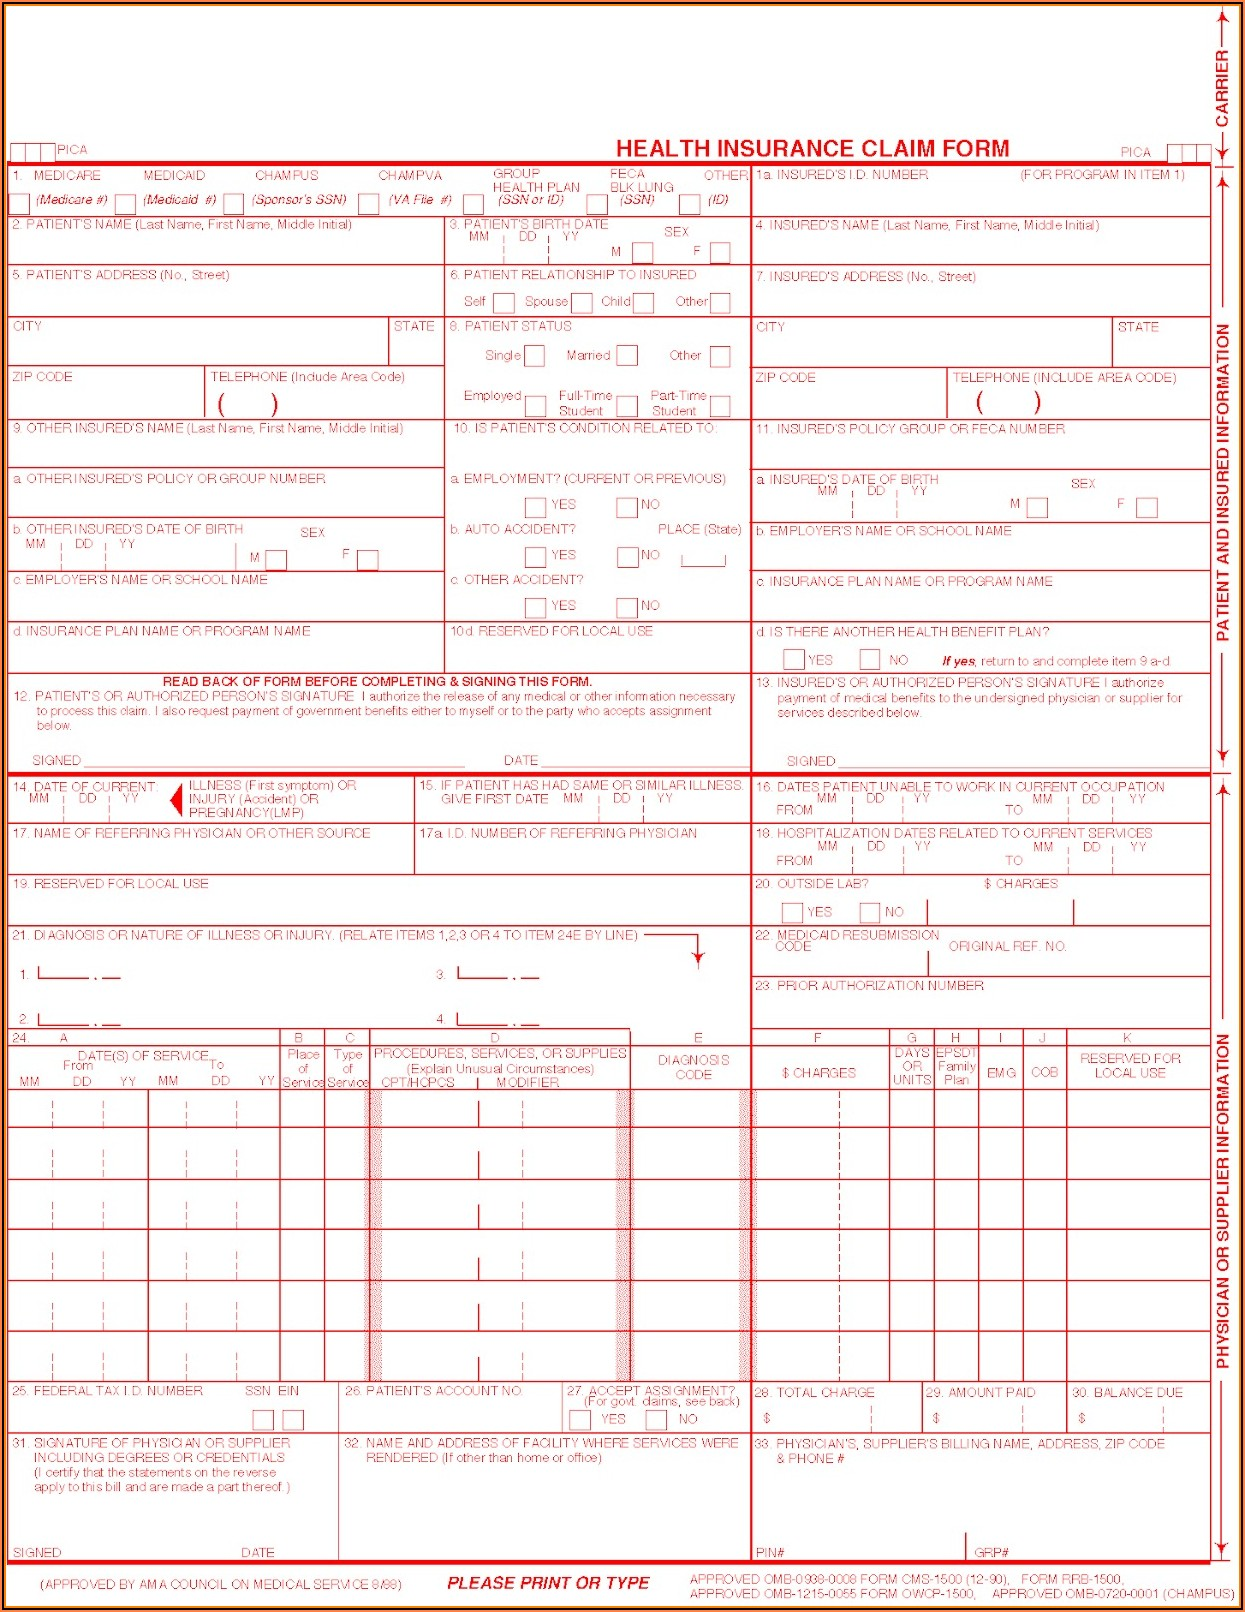 Cms 1500 Claim Form Fillable Download Free